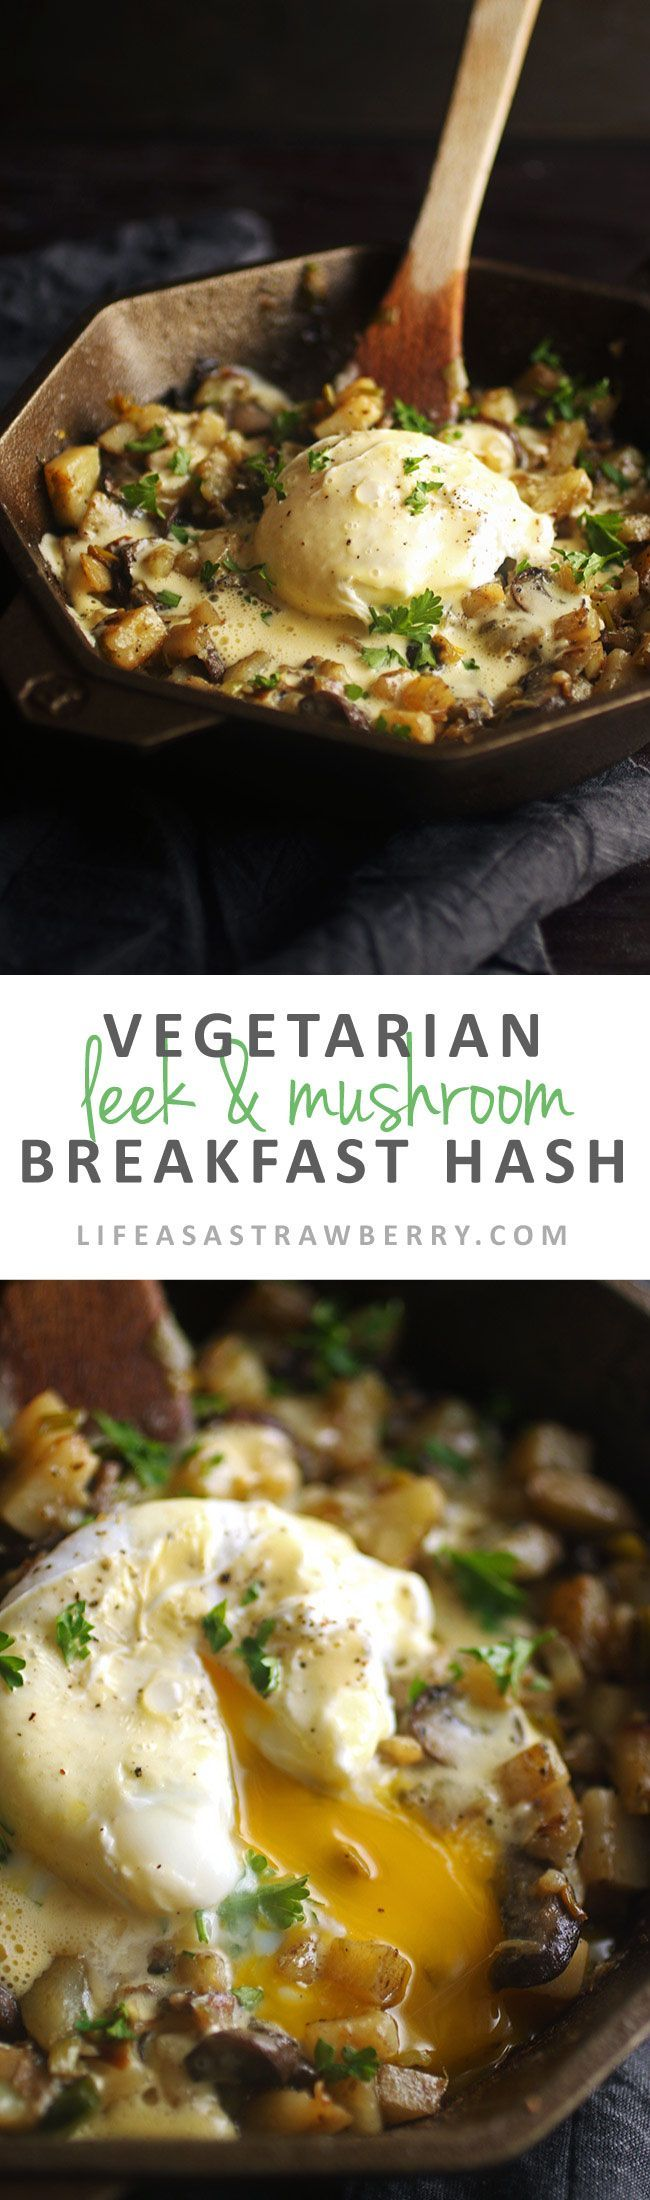 Vegetarian Leek and Mushroom Breakfast Hash - This easy breakfast recipe is sure to be a hit! Potatoes, earthy leeks and mushrooms, and a buttery homemade hollandaise sauce make this a delicious brunch recipe option. Vegetarian.